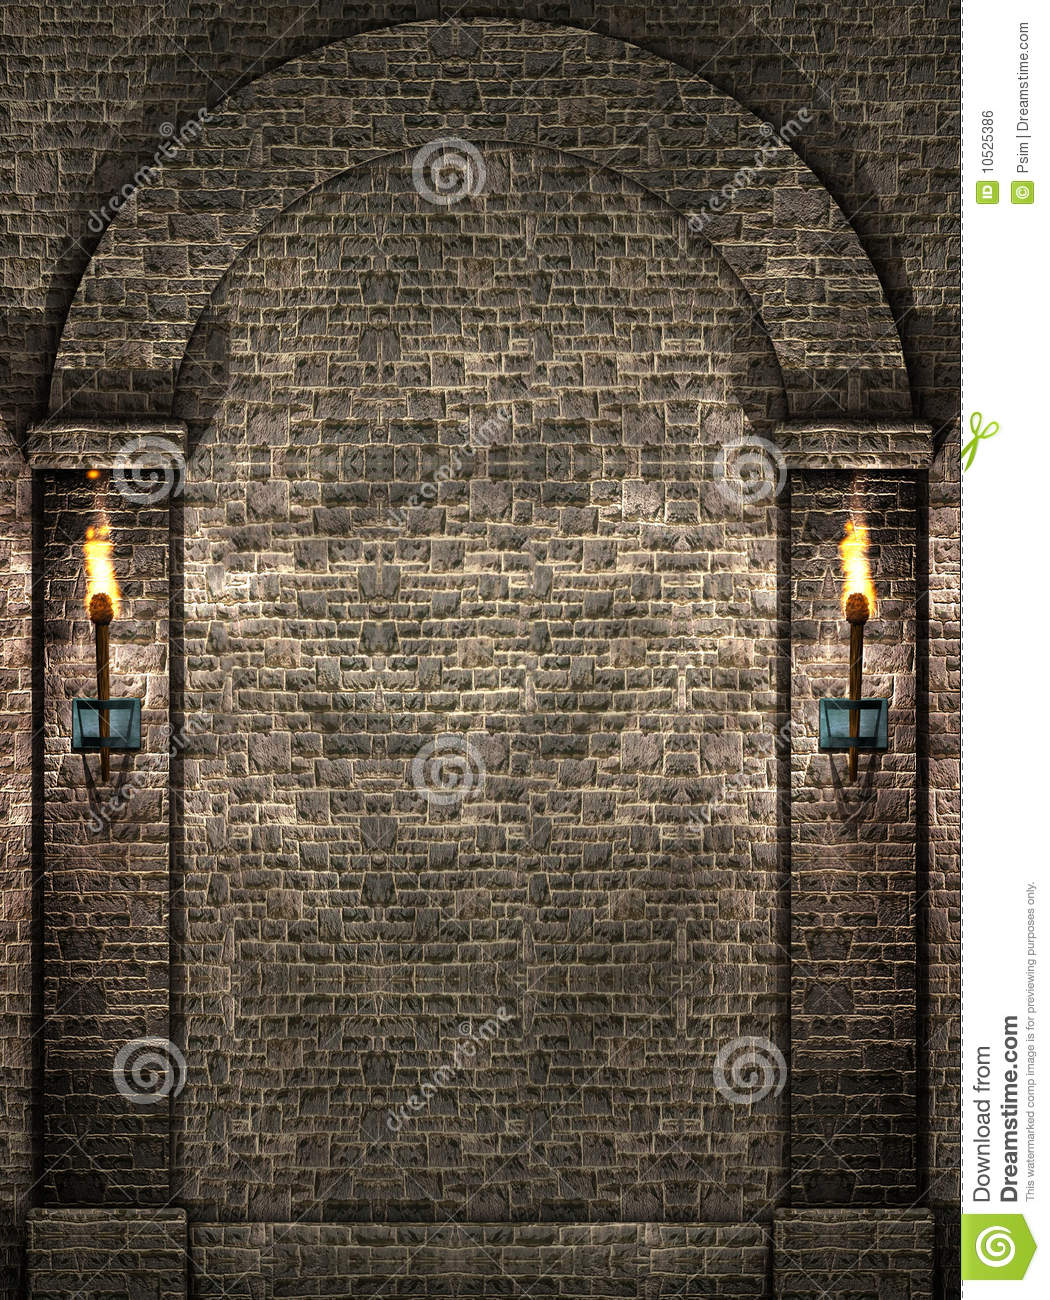 stone wall with torches royalty free stock image image